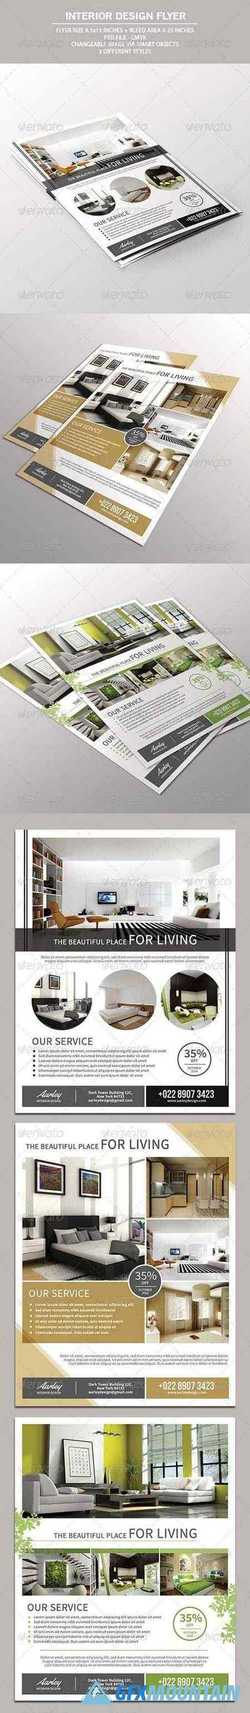 Interior Design Flyer 7520574